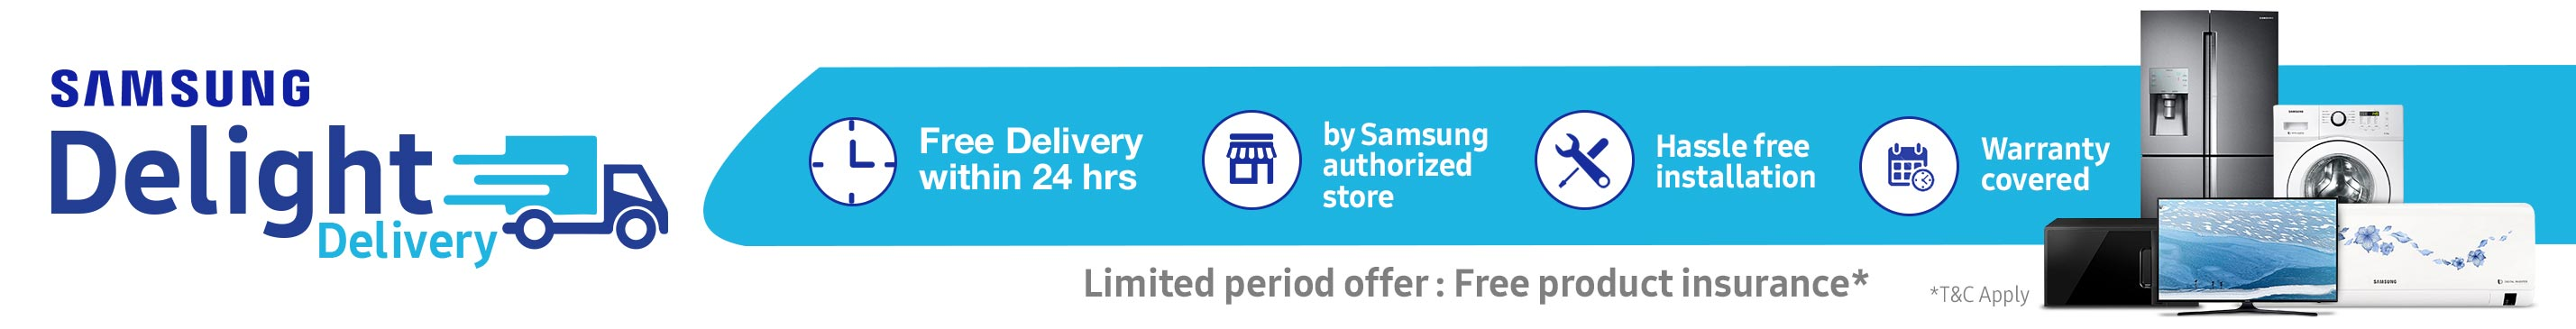 samsung delight delivery